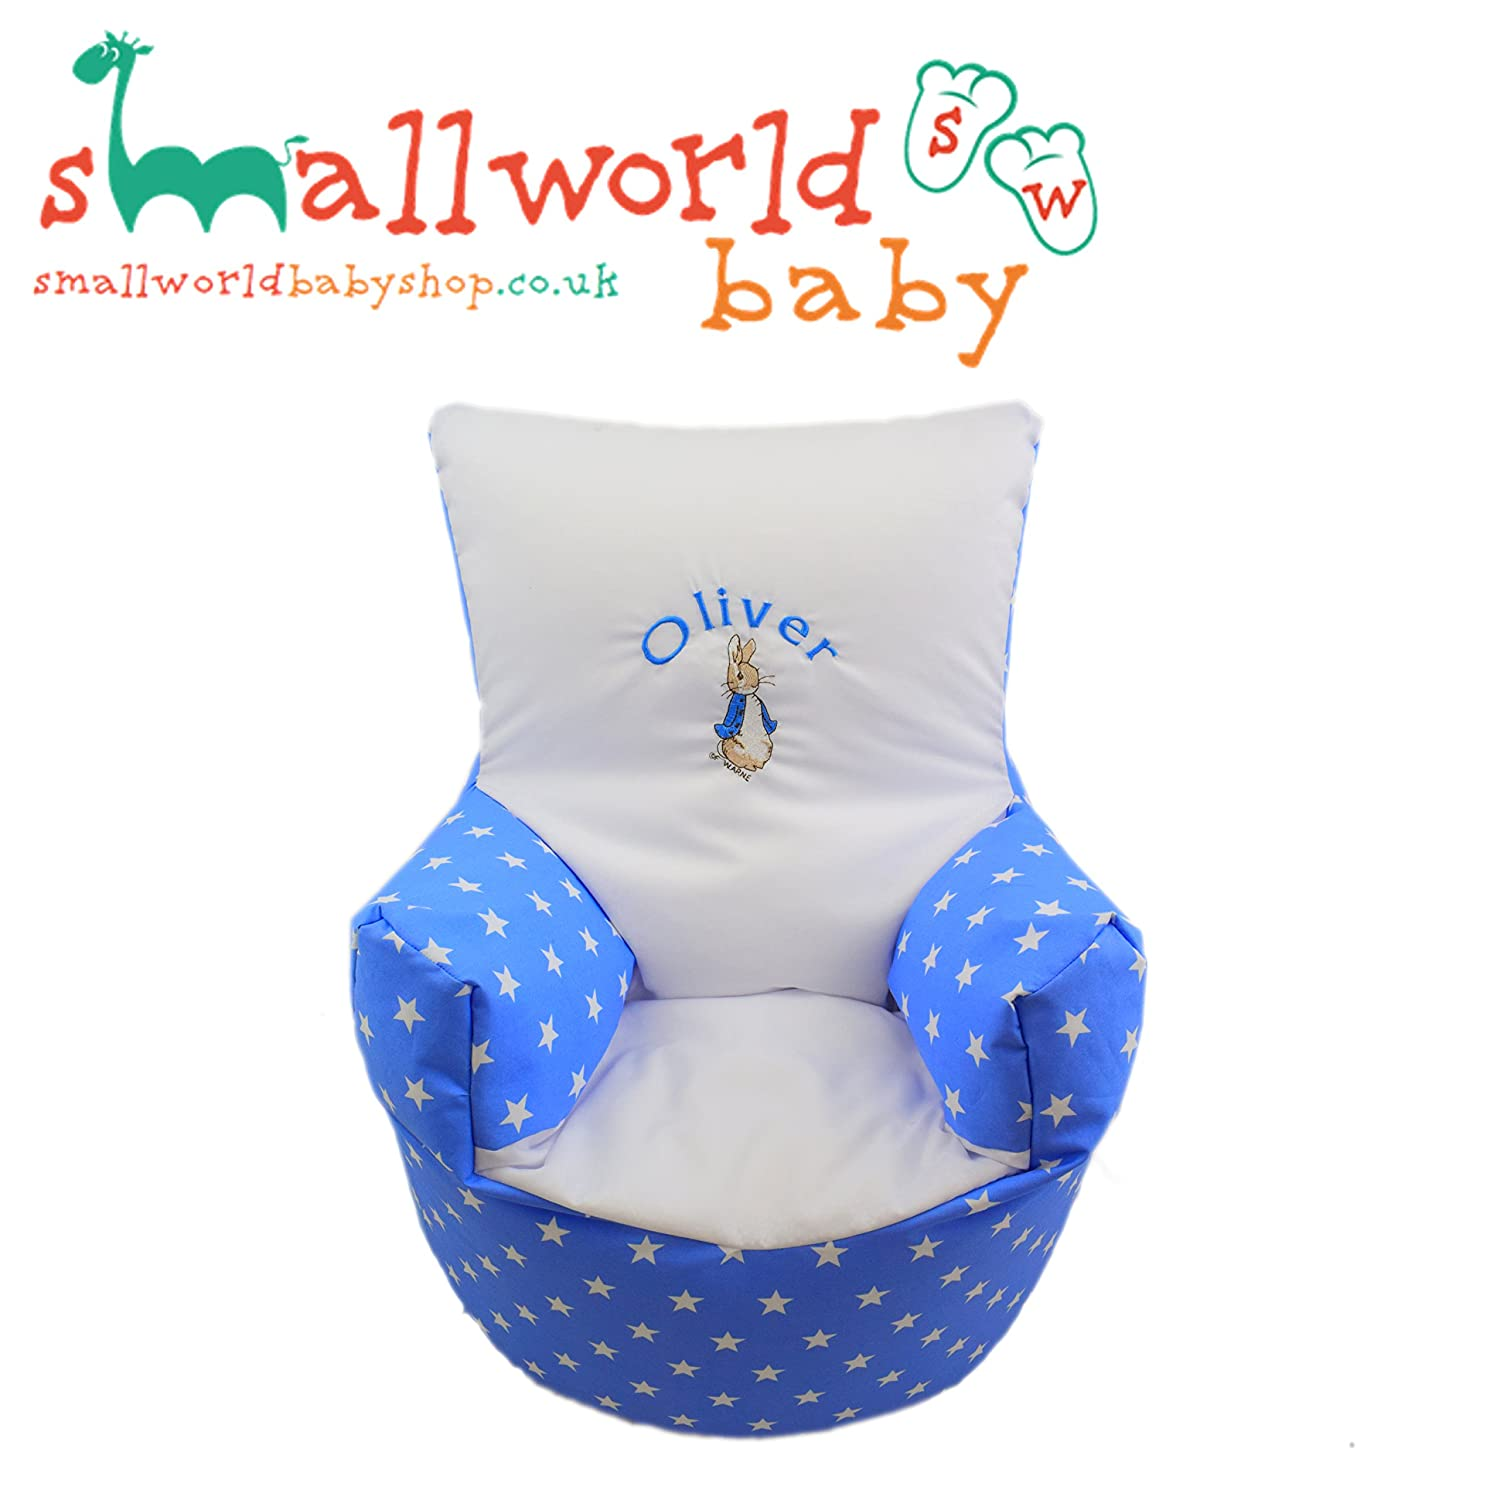 Childrens Kids Toddler PRE Filled Personalised Bean Bag Chair SEAT Girls Boys (Next Day Dispatch) Small World Baby